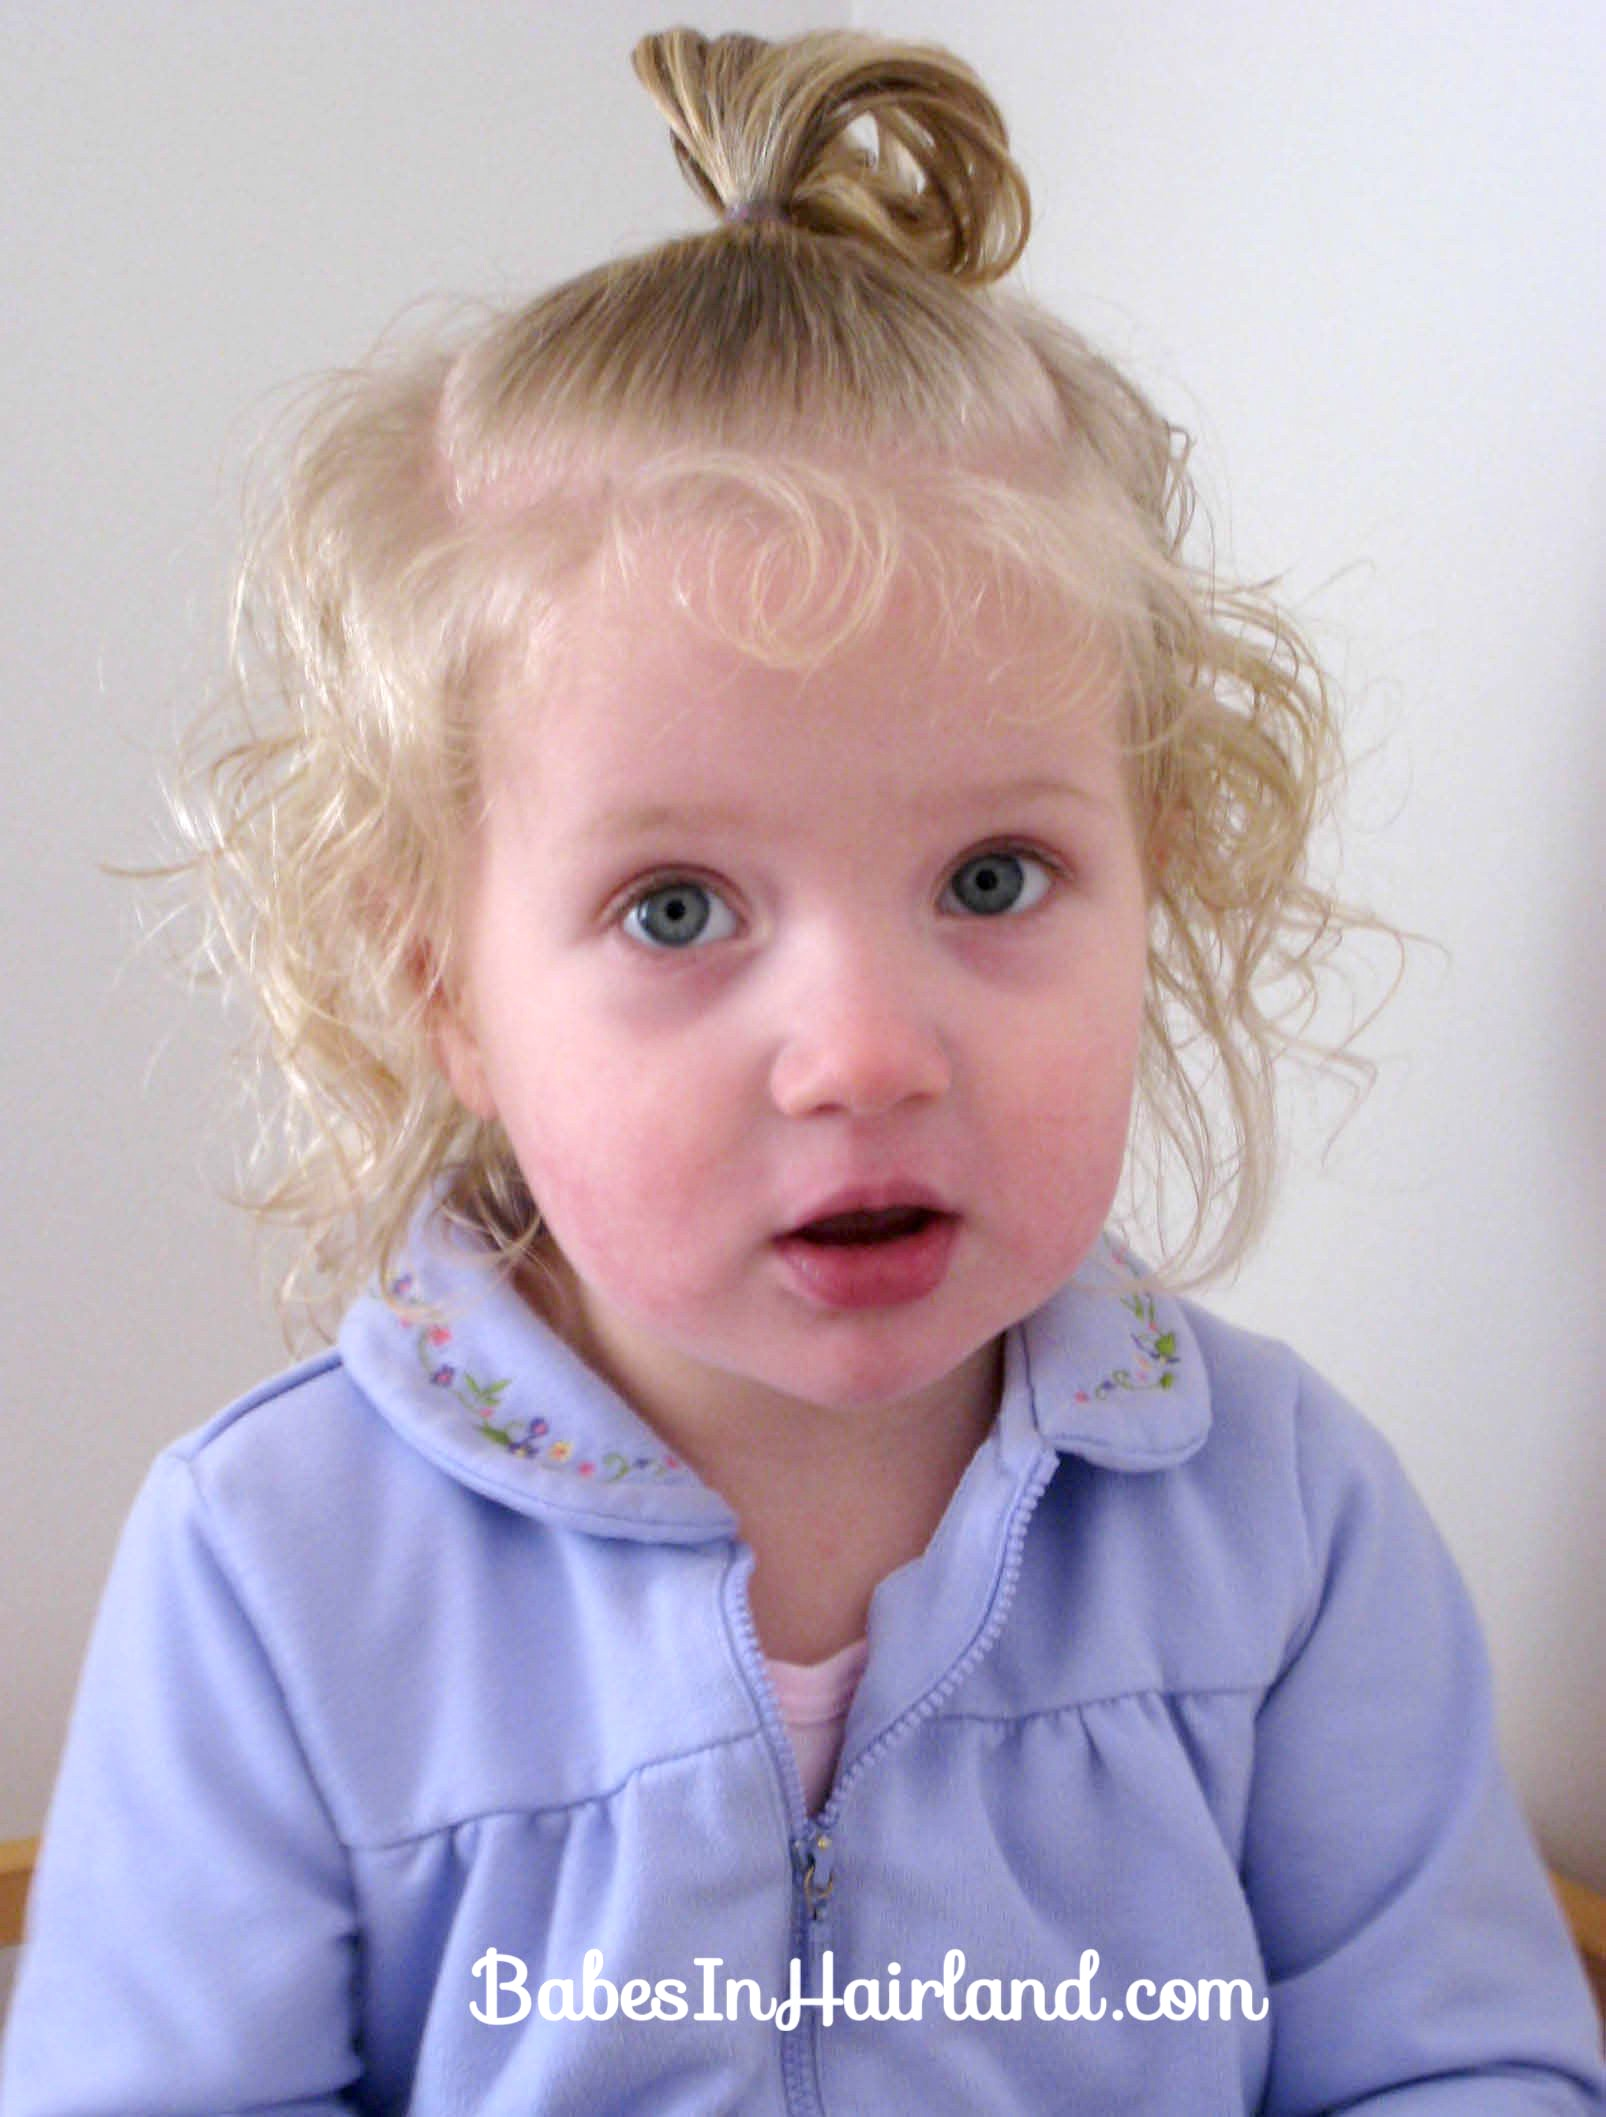 How To Care For Your Daughter S Curly Hair Tips Tricks Advice